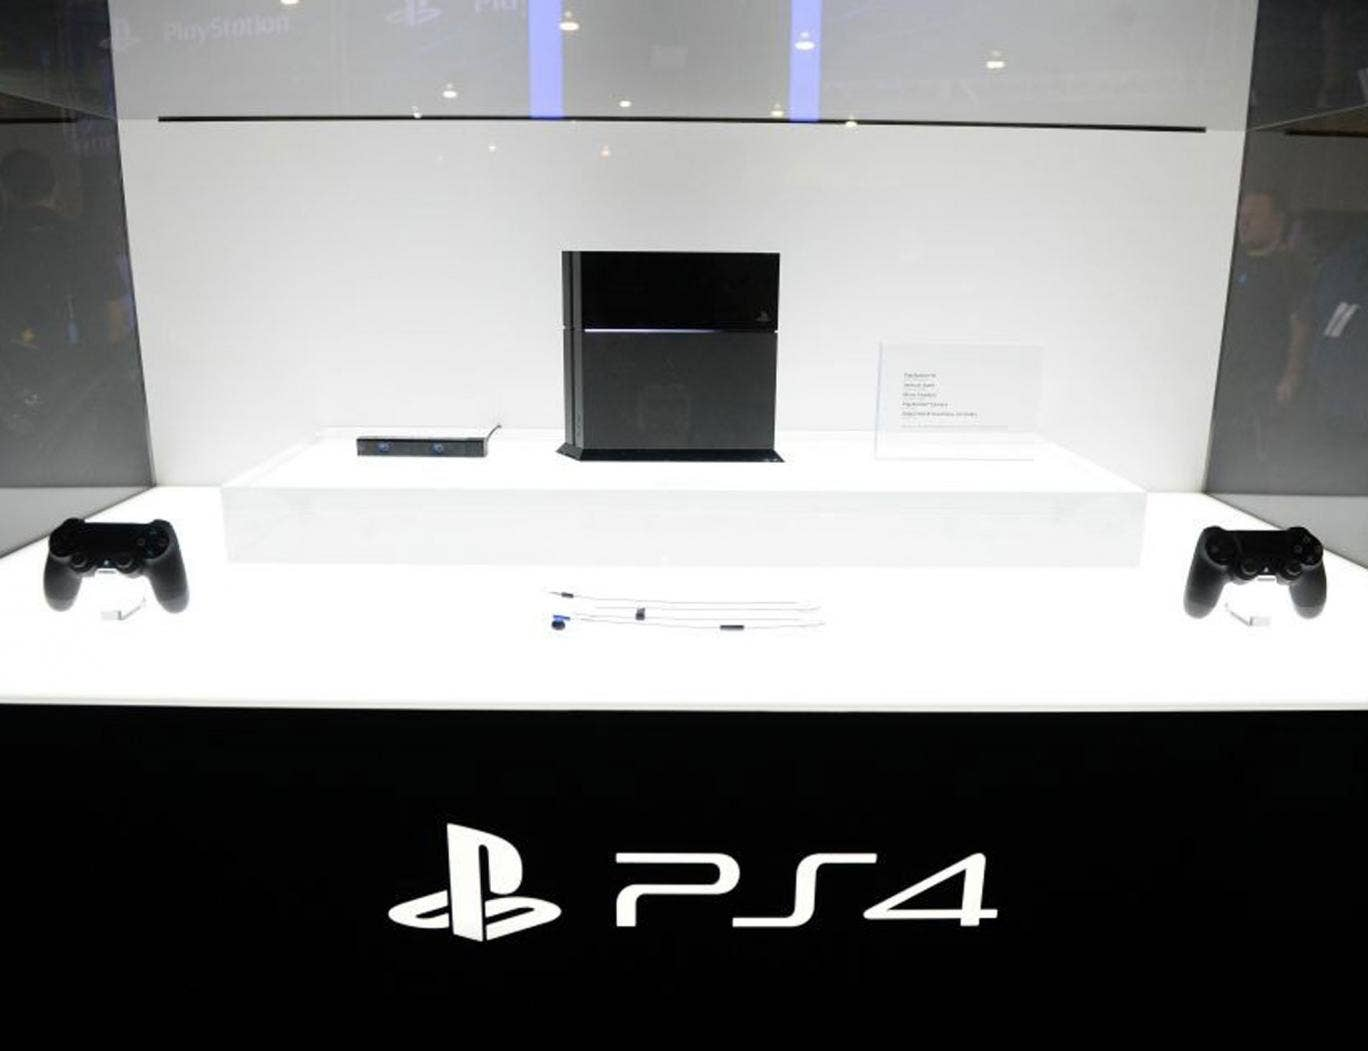 Sony Computer Entertainment make the Playstation consoles